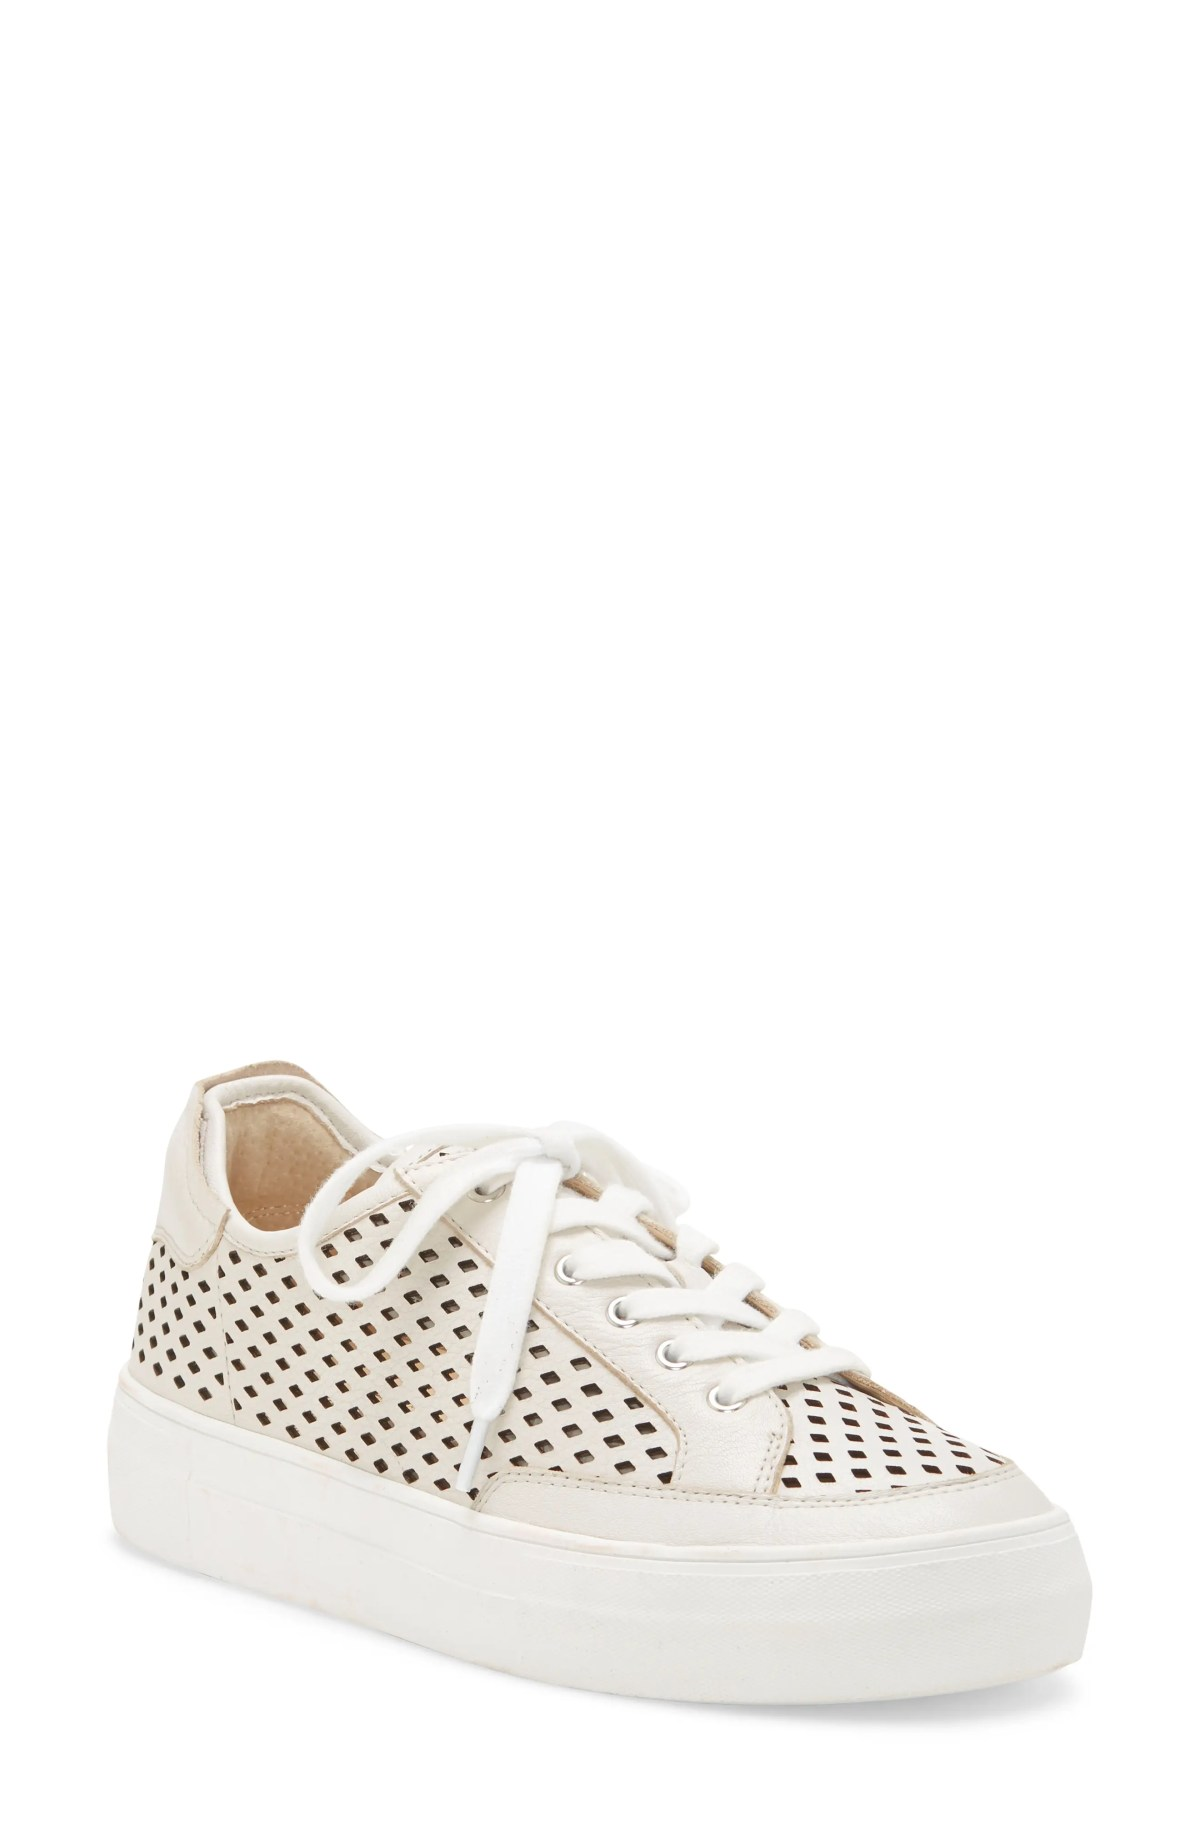 VINCE CAMUTO Karshey Platform Sneaker, Main, color, ICY GREY